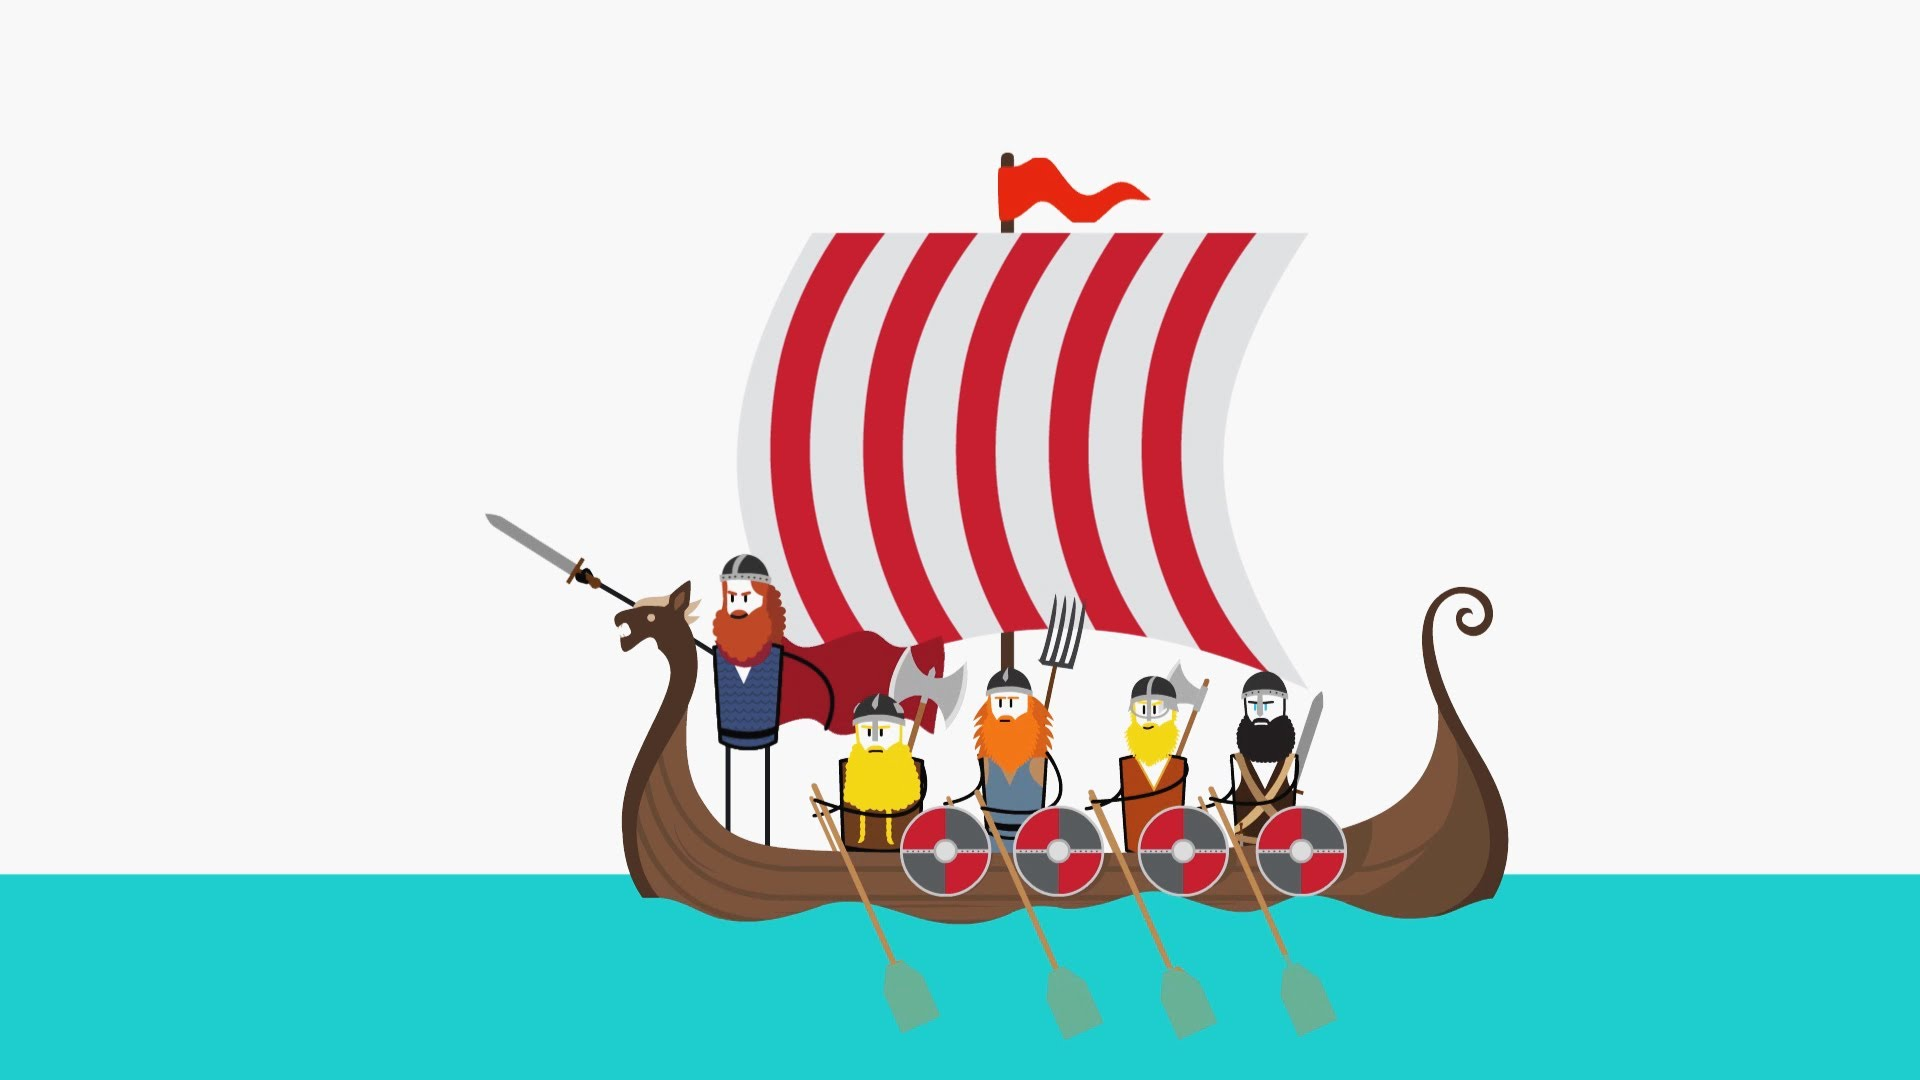 Viking Ship clipart vicious Fun Facts to 10 the